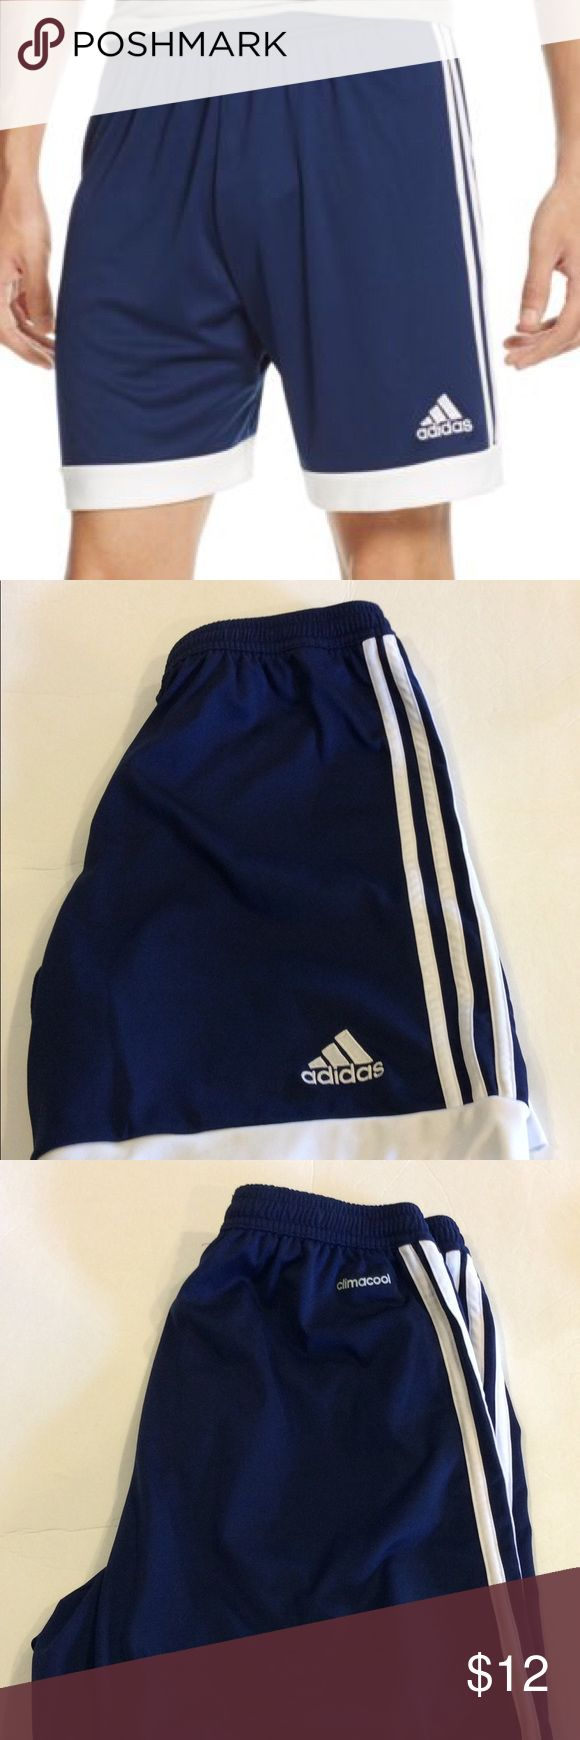 Adidas youths soccer shorts Like new condition. Inseam is 8 inches and rise is 10 1/2 inches. climacool® provides heat and moisture management through ventilation. Embroidered adidas brandmark. DryDye new dyeing technique saves 25 liters of water per jersey and uses 50% less energy and 50% fewer chemicals. 100% polyester interlock. Color is navy. adidas Bottoms Shorts